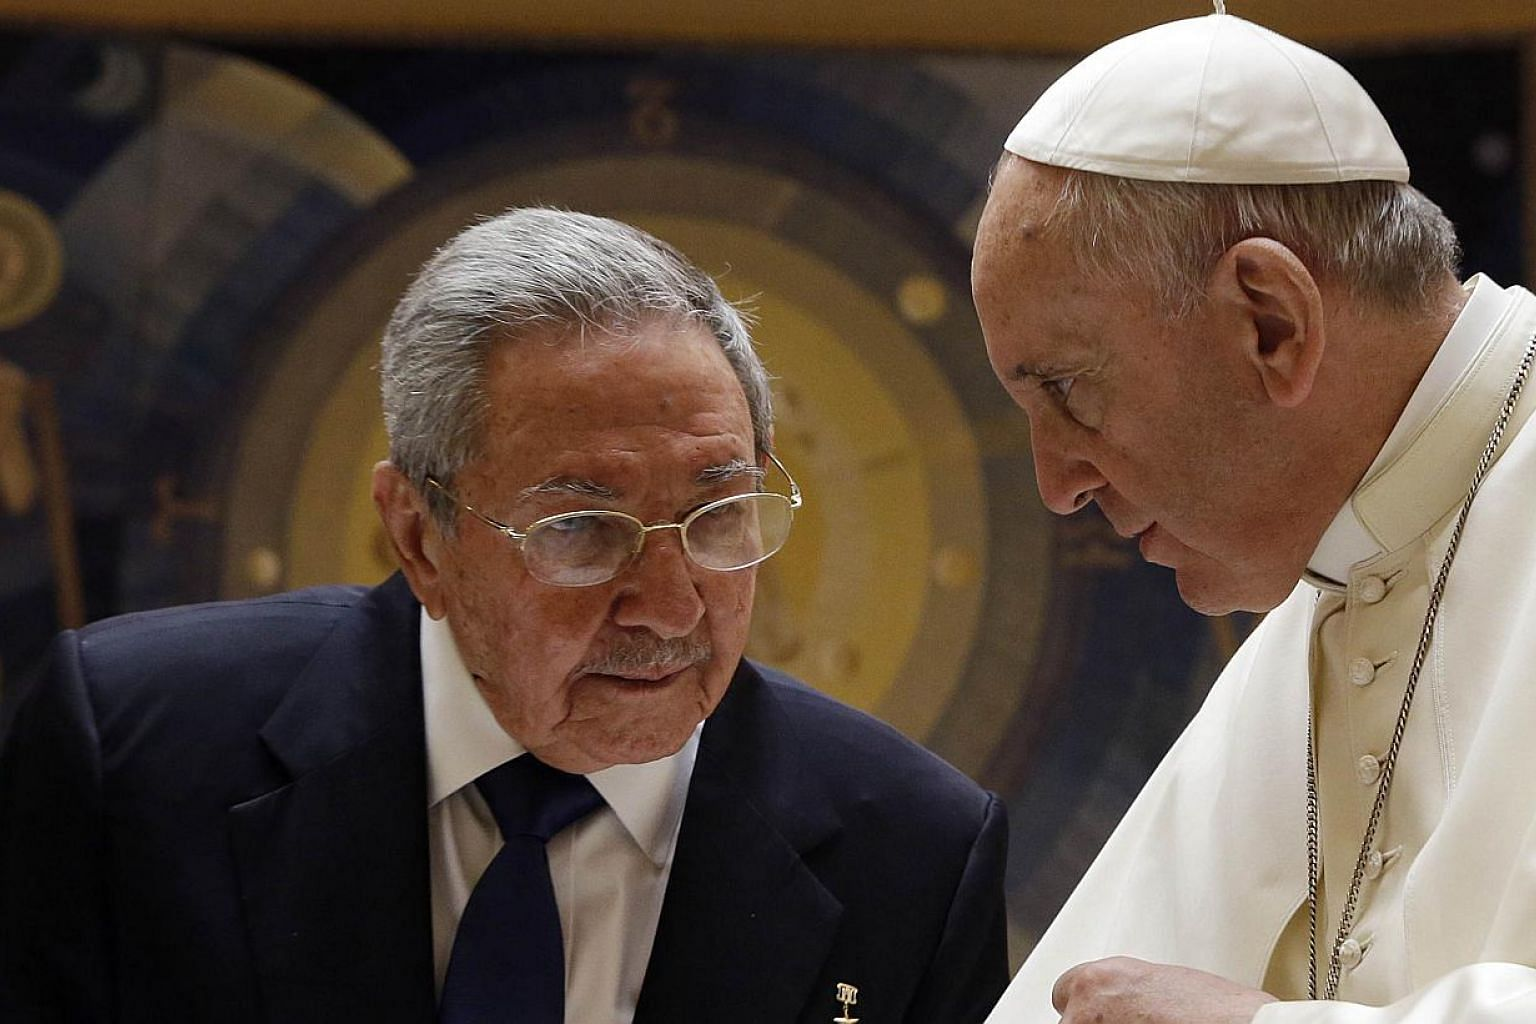 Pope Francis (right) talks with Cuban President Raul Castro during a private audience at the Vatican on May 10, 2015. Pope Francis, who helped broker a historic thaw between the United States and Cuba, held talks with Castro on Sunday ahead of the po